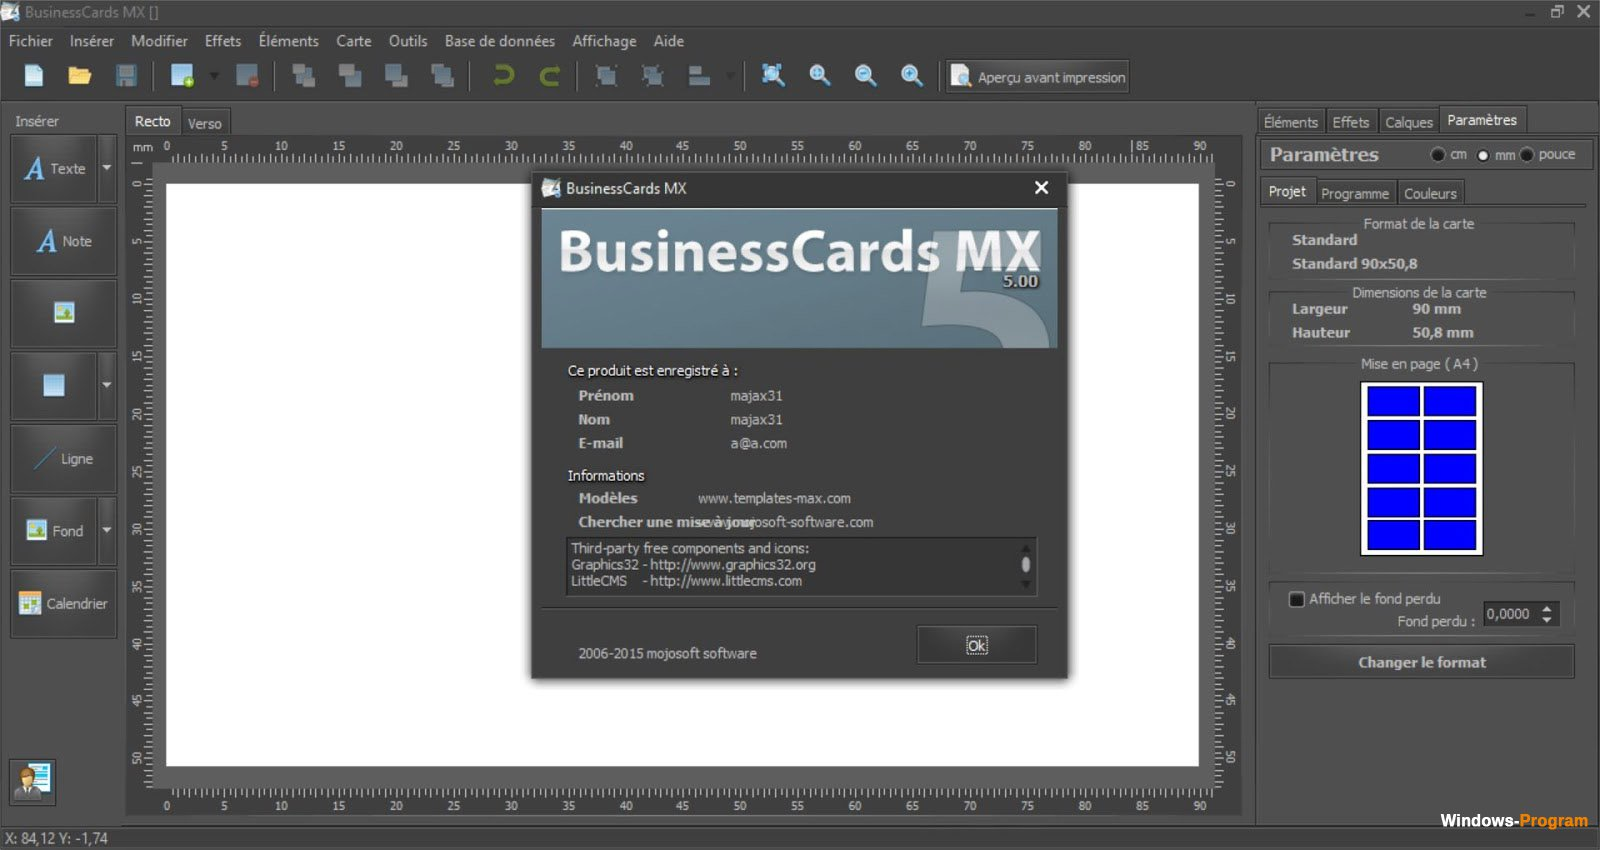 Скачать BusinessCards MX 5.00 Portable на русском + торрент